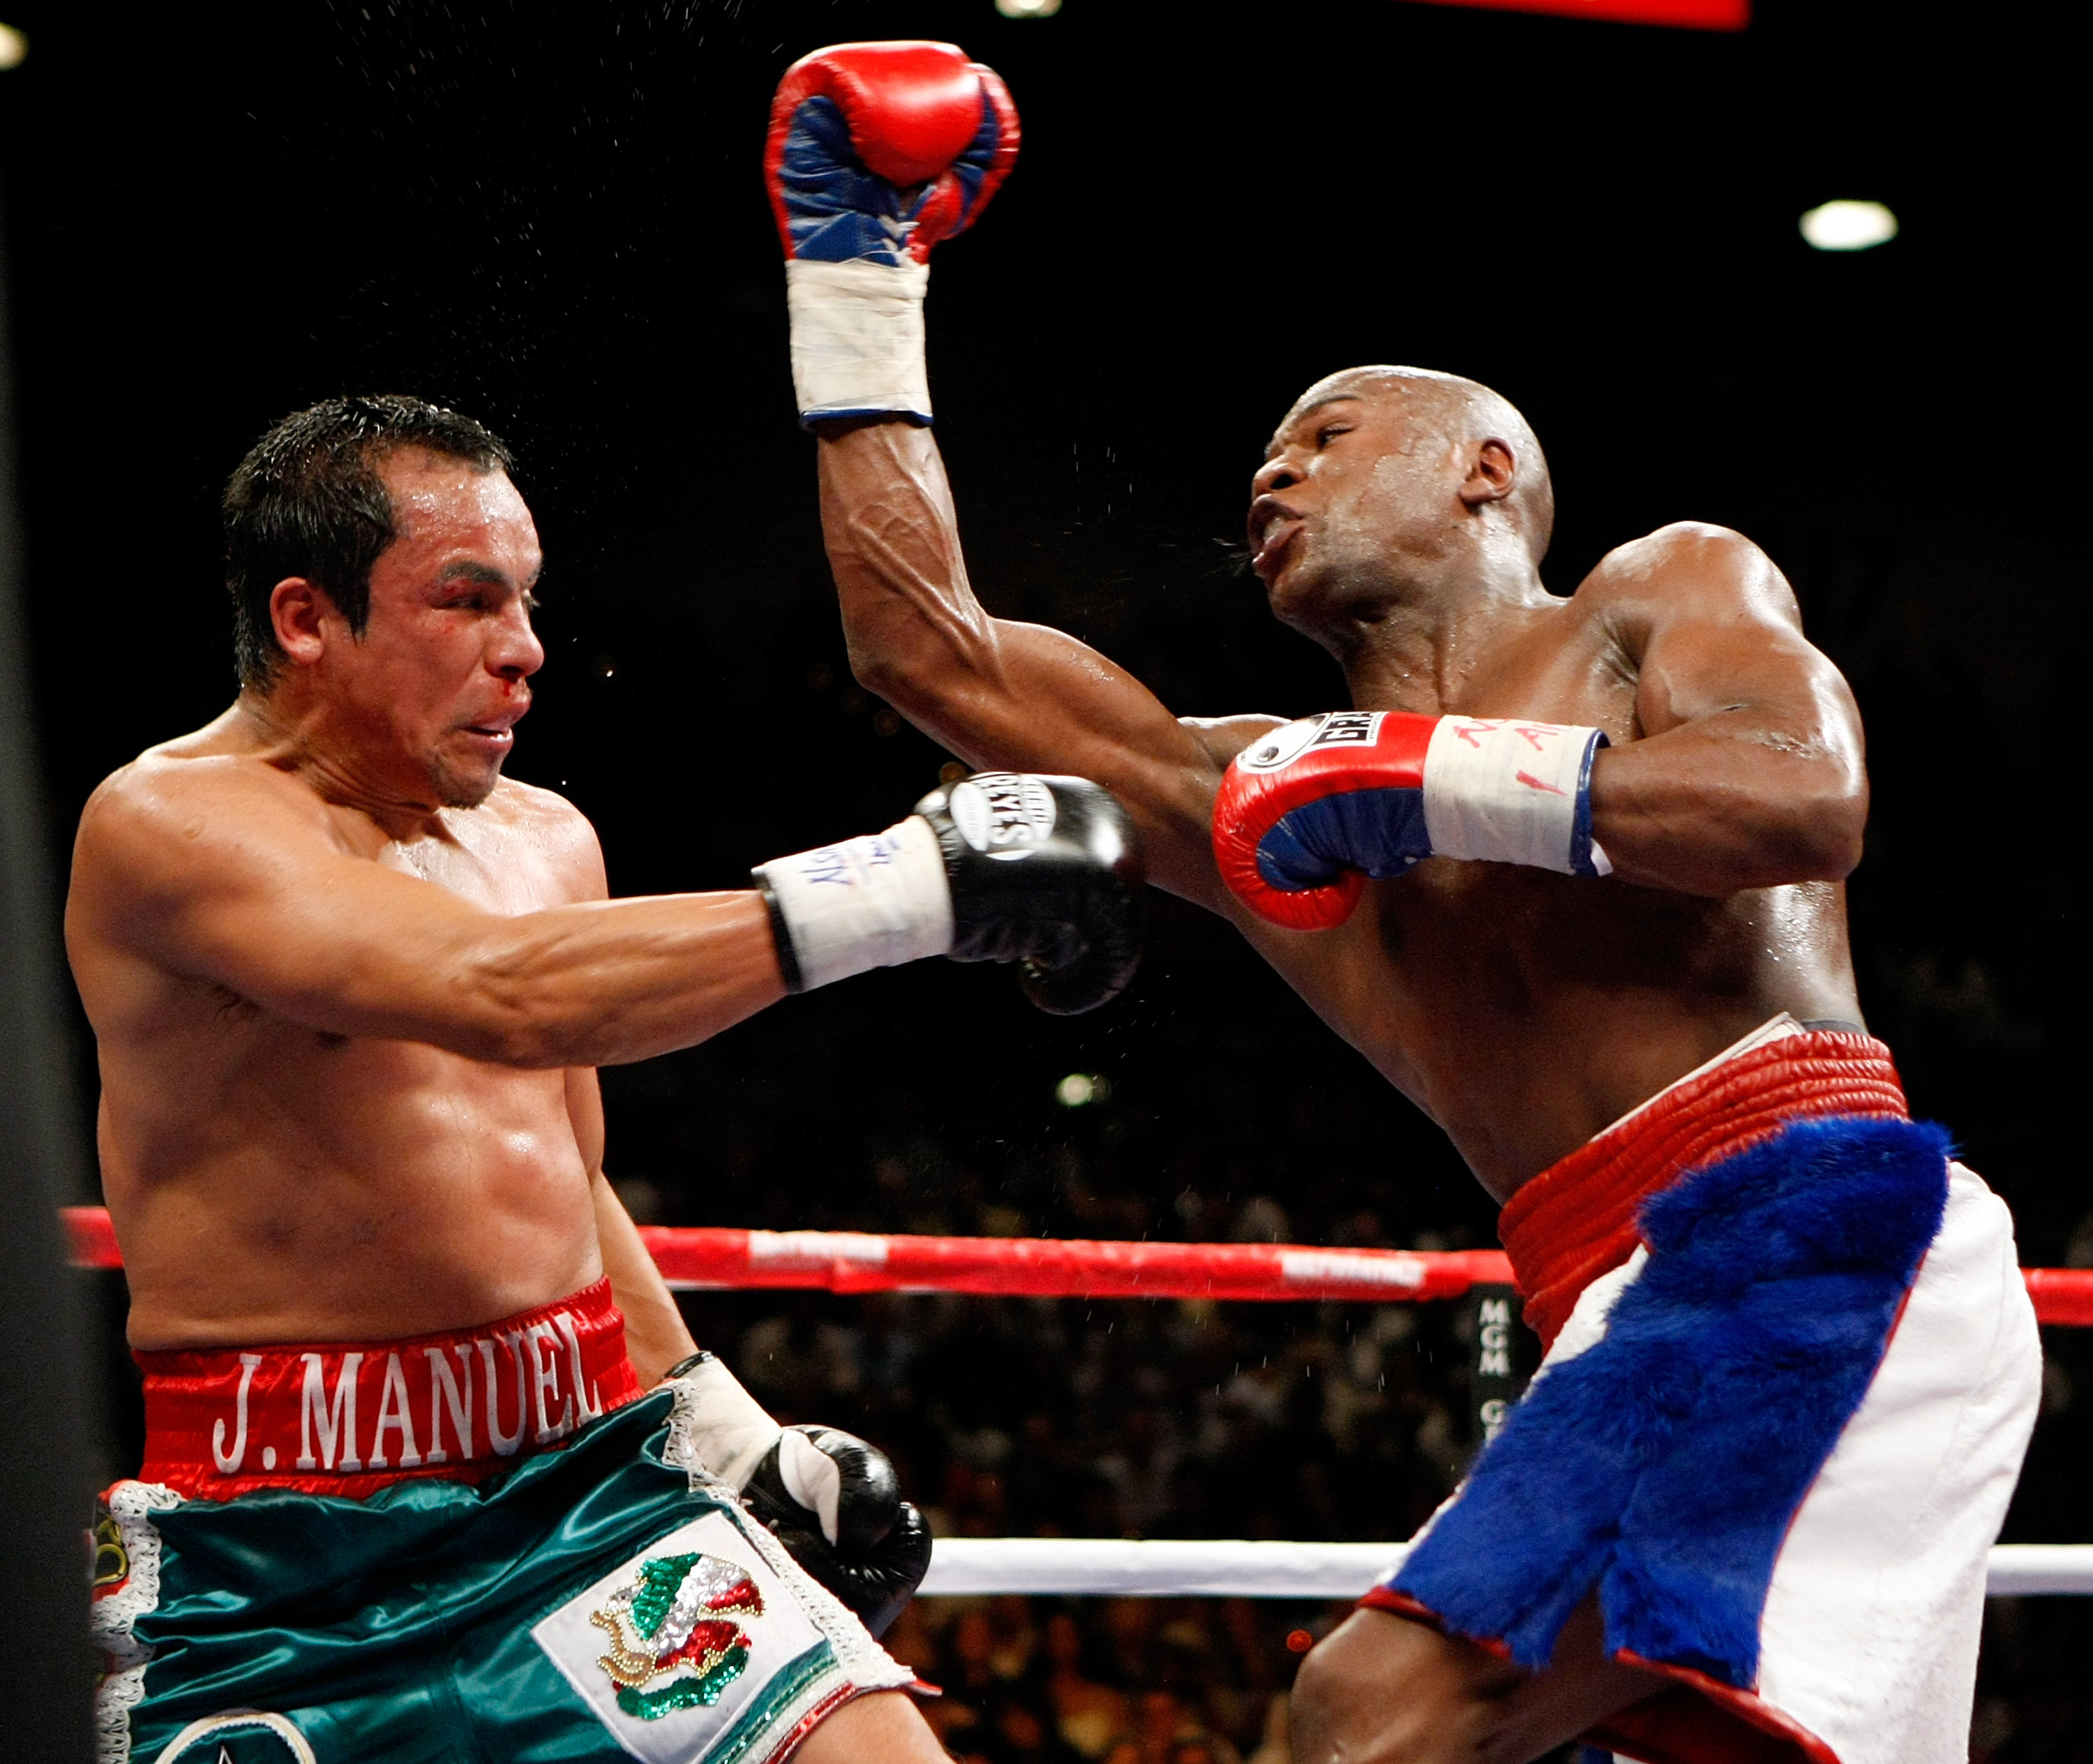 LAS VEGAS - SEPTEMBER 19:  Floyd Mayweather Jr. (R) throws a punch at Juan Manuel Marquez in the sixth round of their fight at the MGM Grand Garden Arena September 19, 2009 in Las Vegas, Nevada. Mayweather won by unanimous decision.  (Photo by Ethan Mille